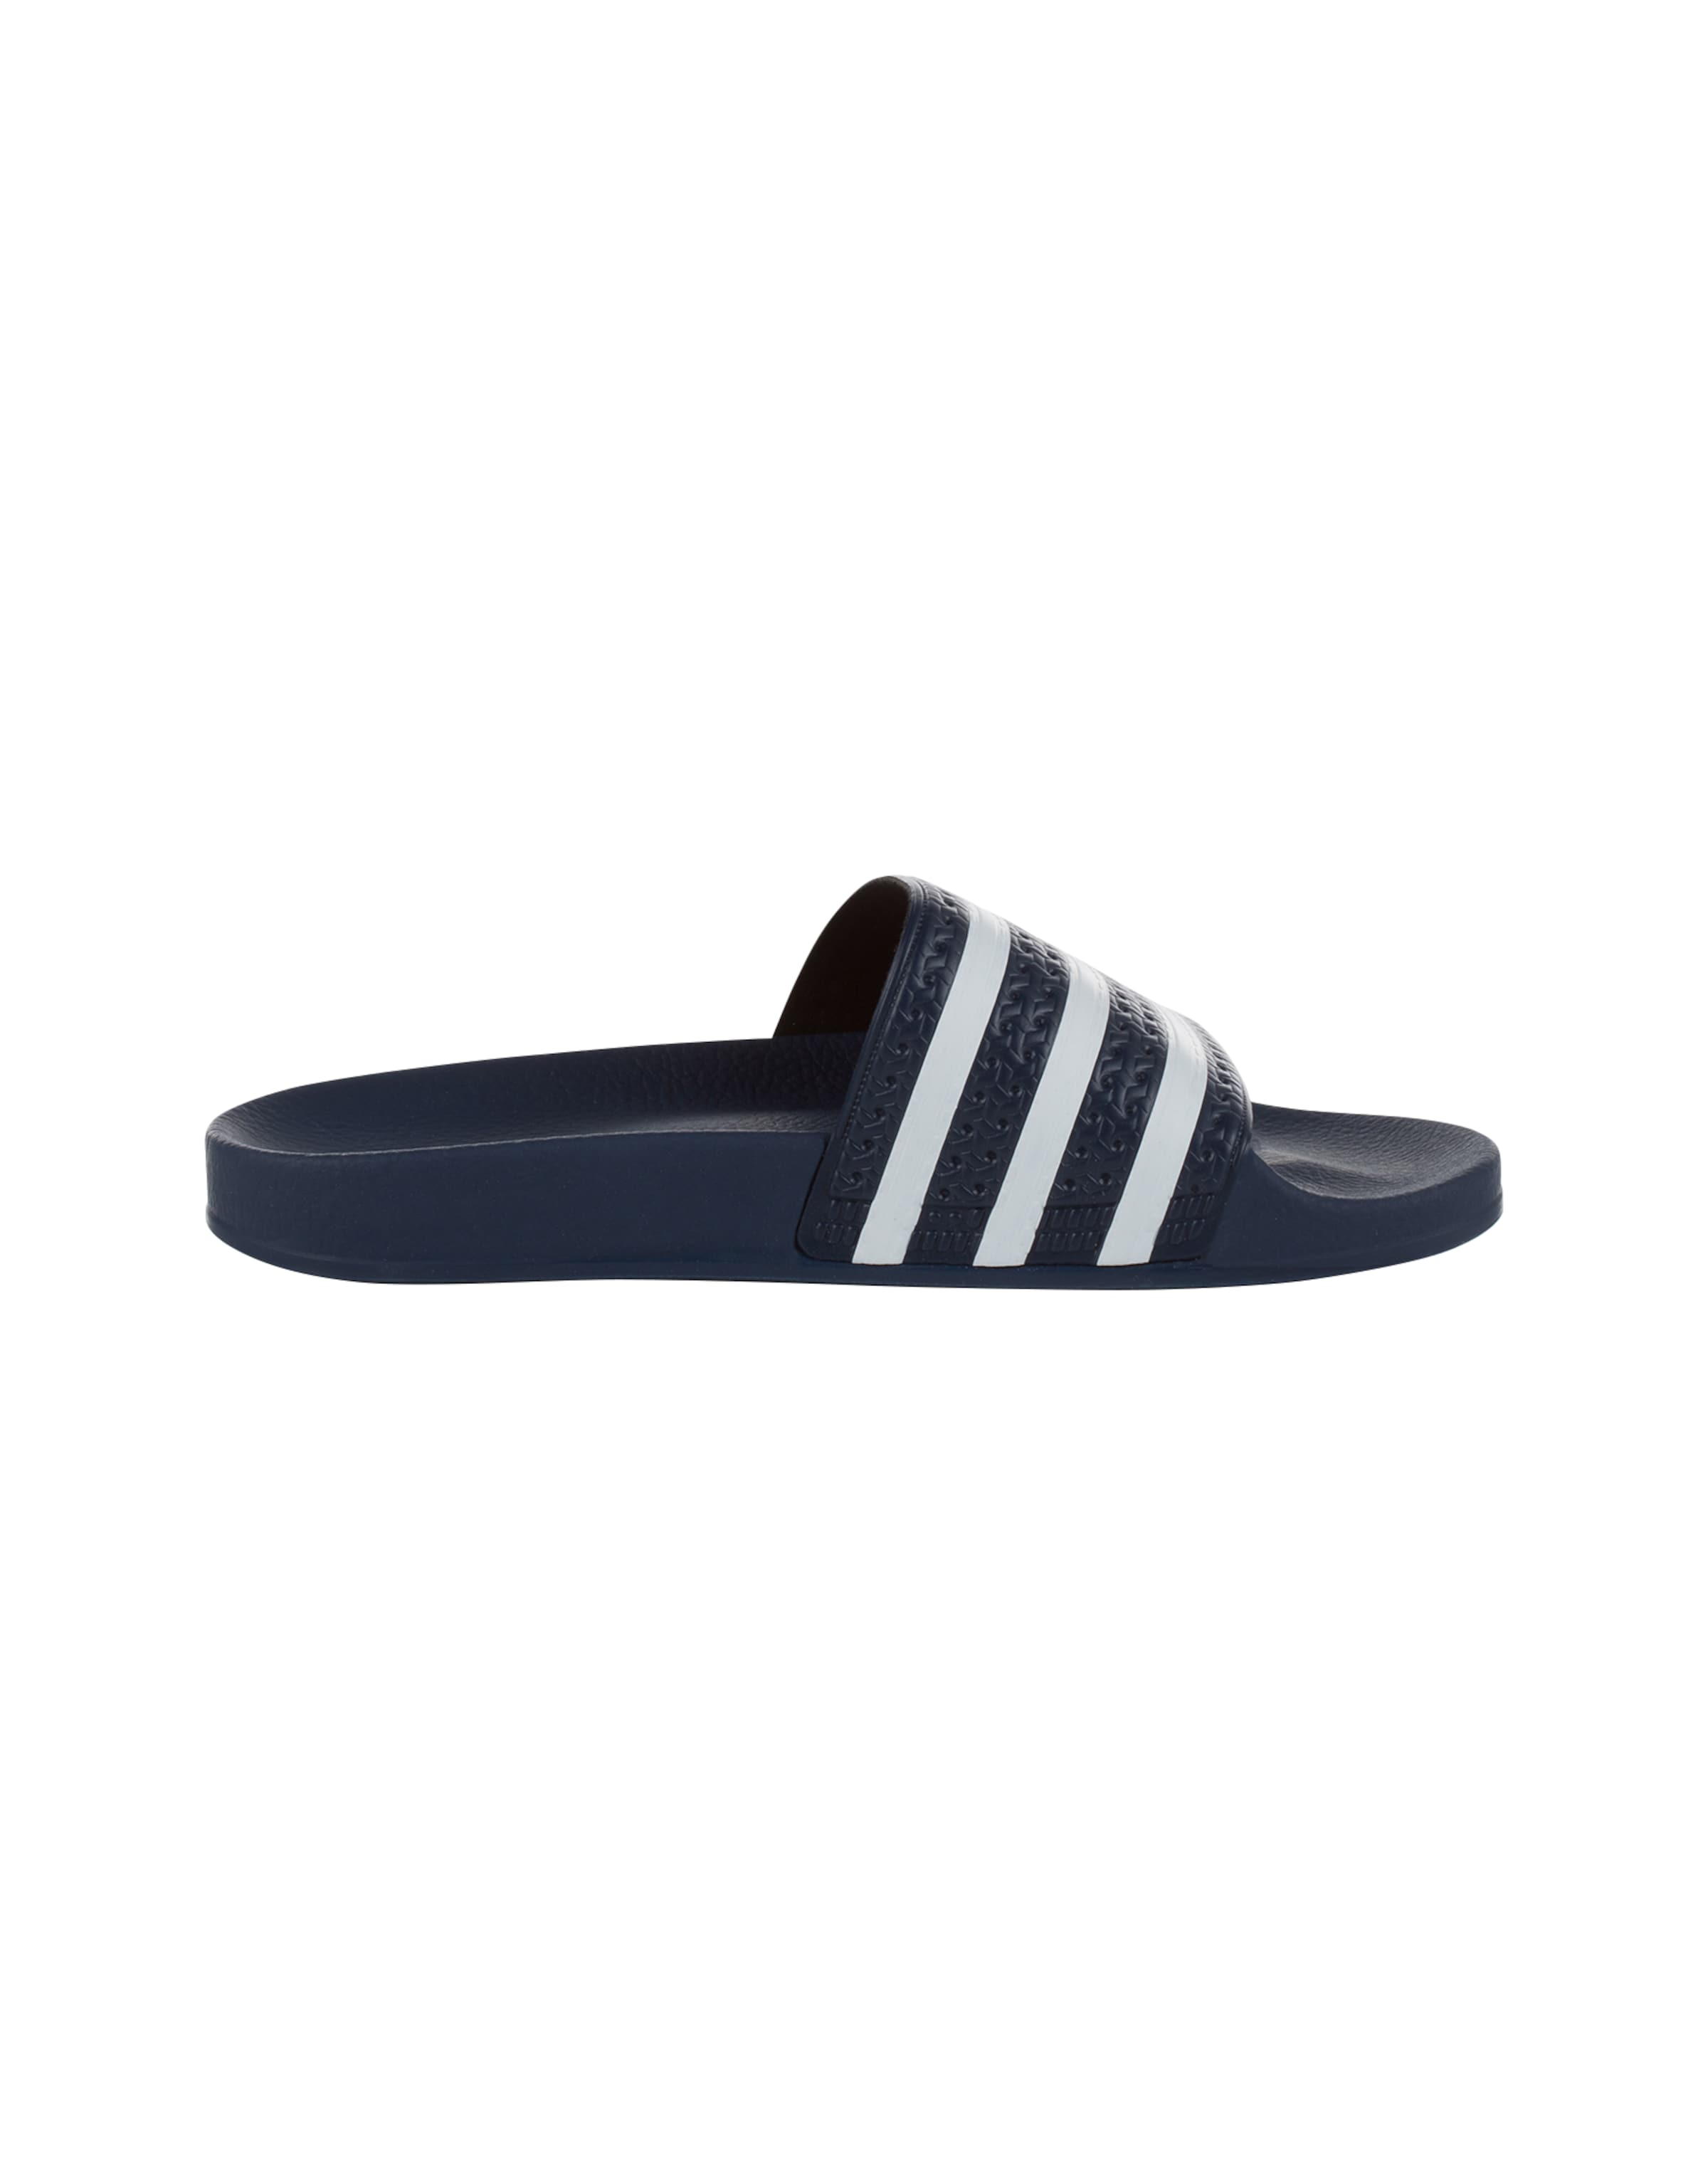 Bade BlauWeiß Originals slider In Adidas 'adilette' zMGqVSUp